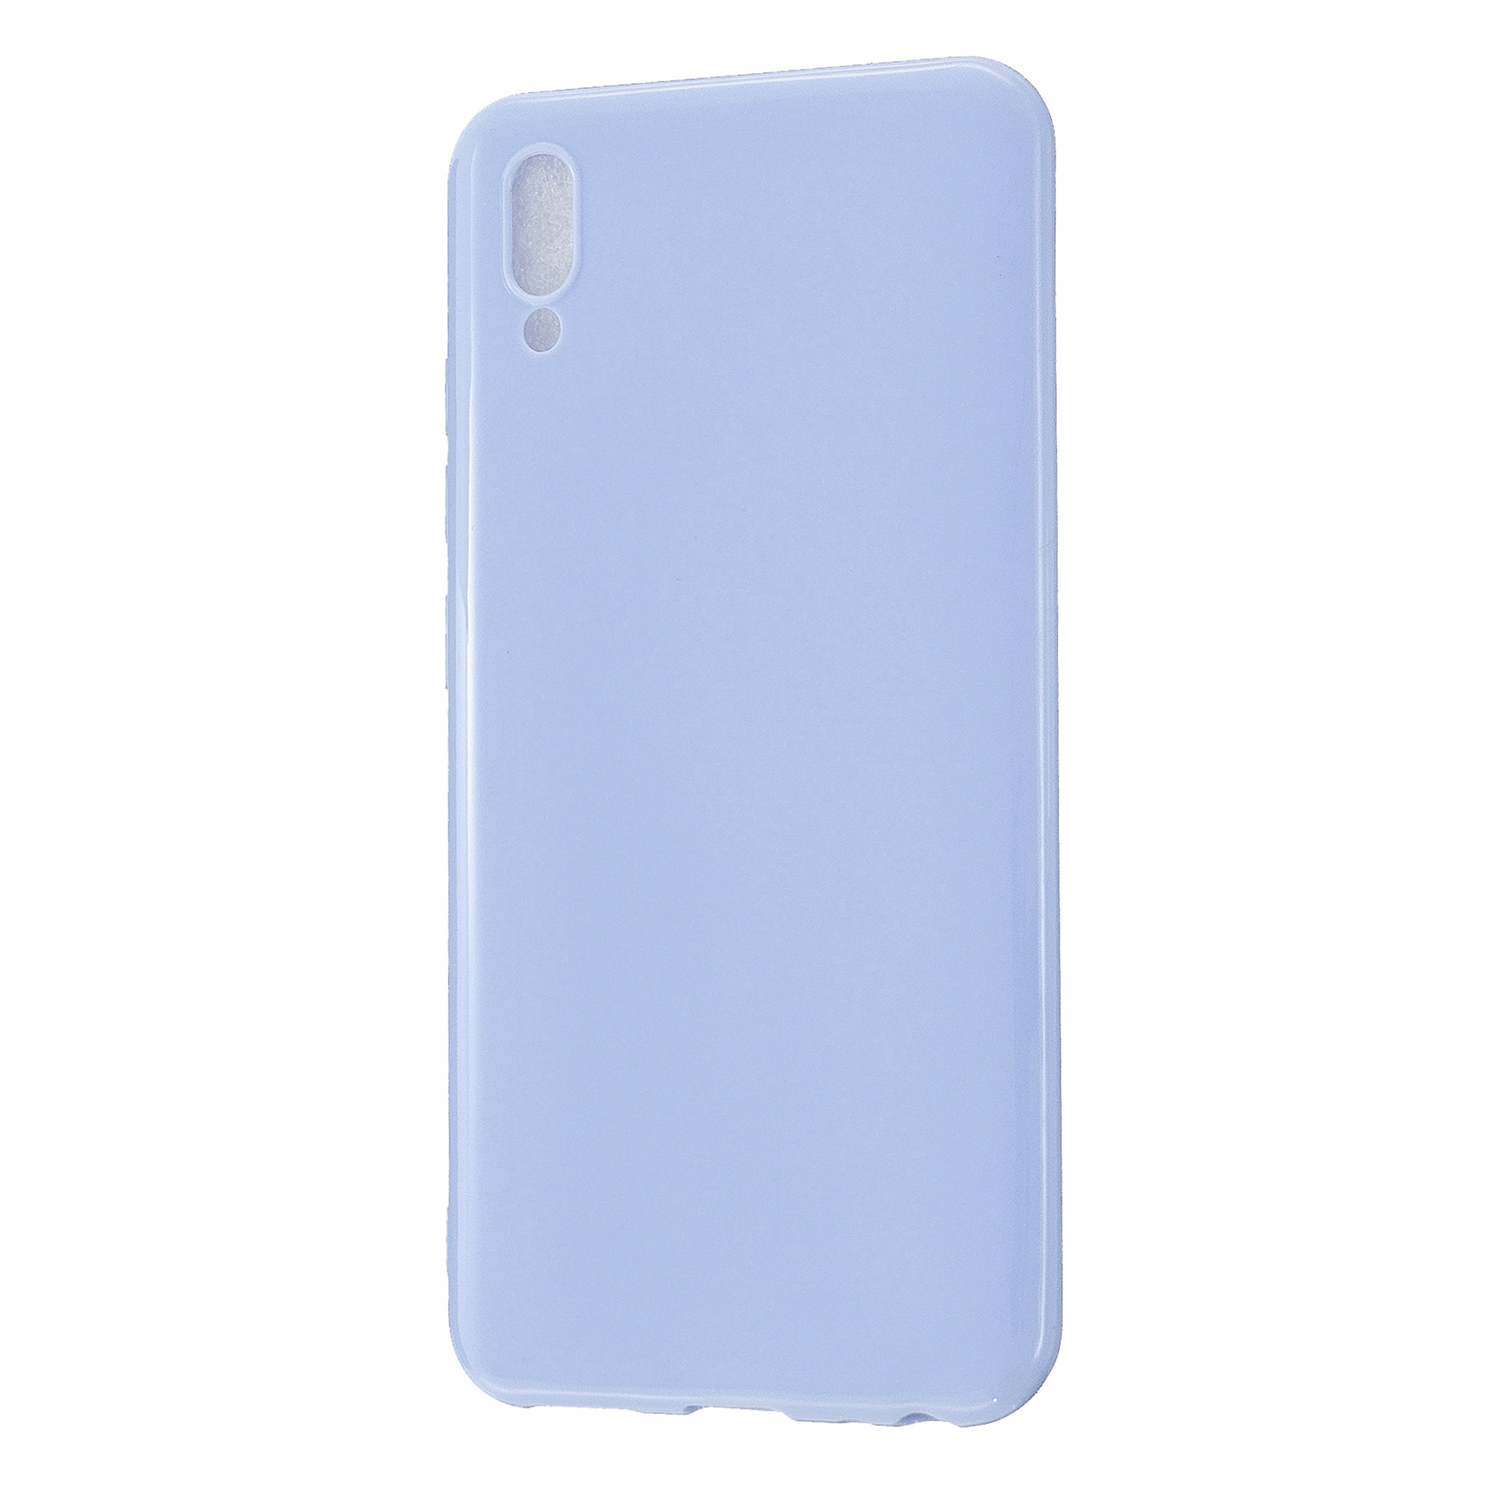 For VIVO Y93/Y95 Mobile Phone Case Glossy Finish Lightweight TPU Cellphone Cover Anti-scratch Overal Protection Shell Taro purple